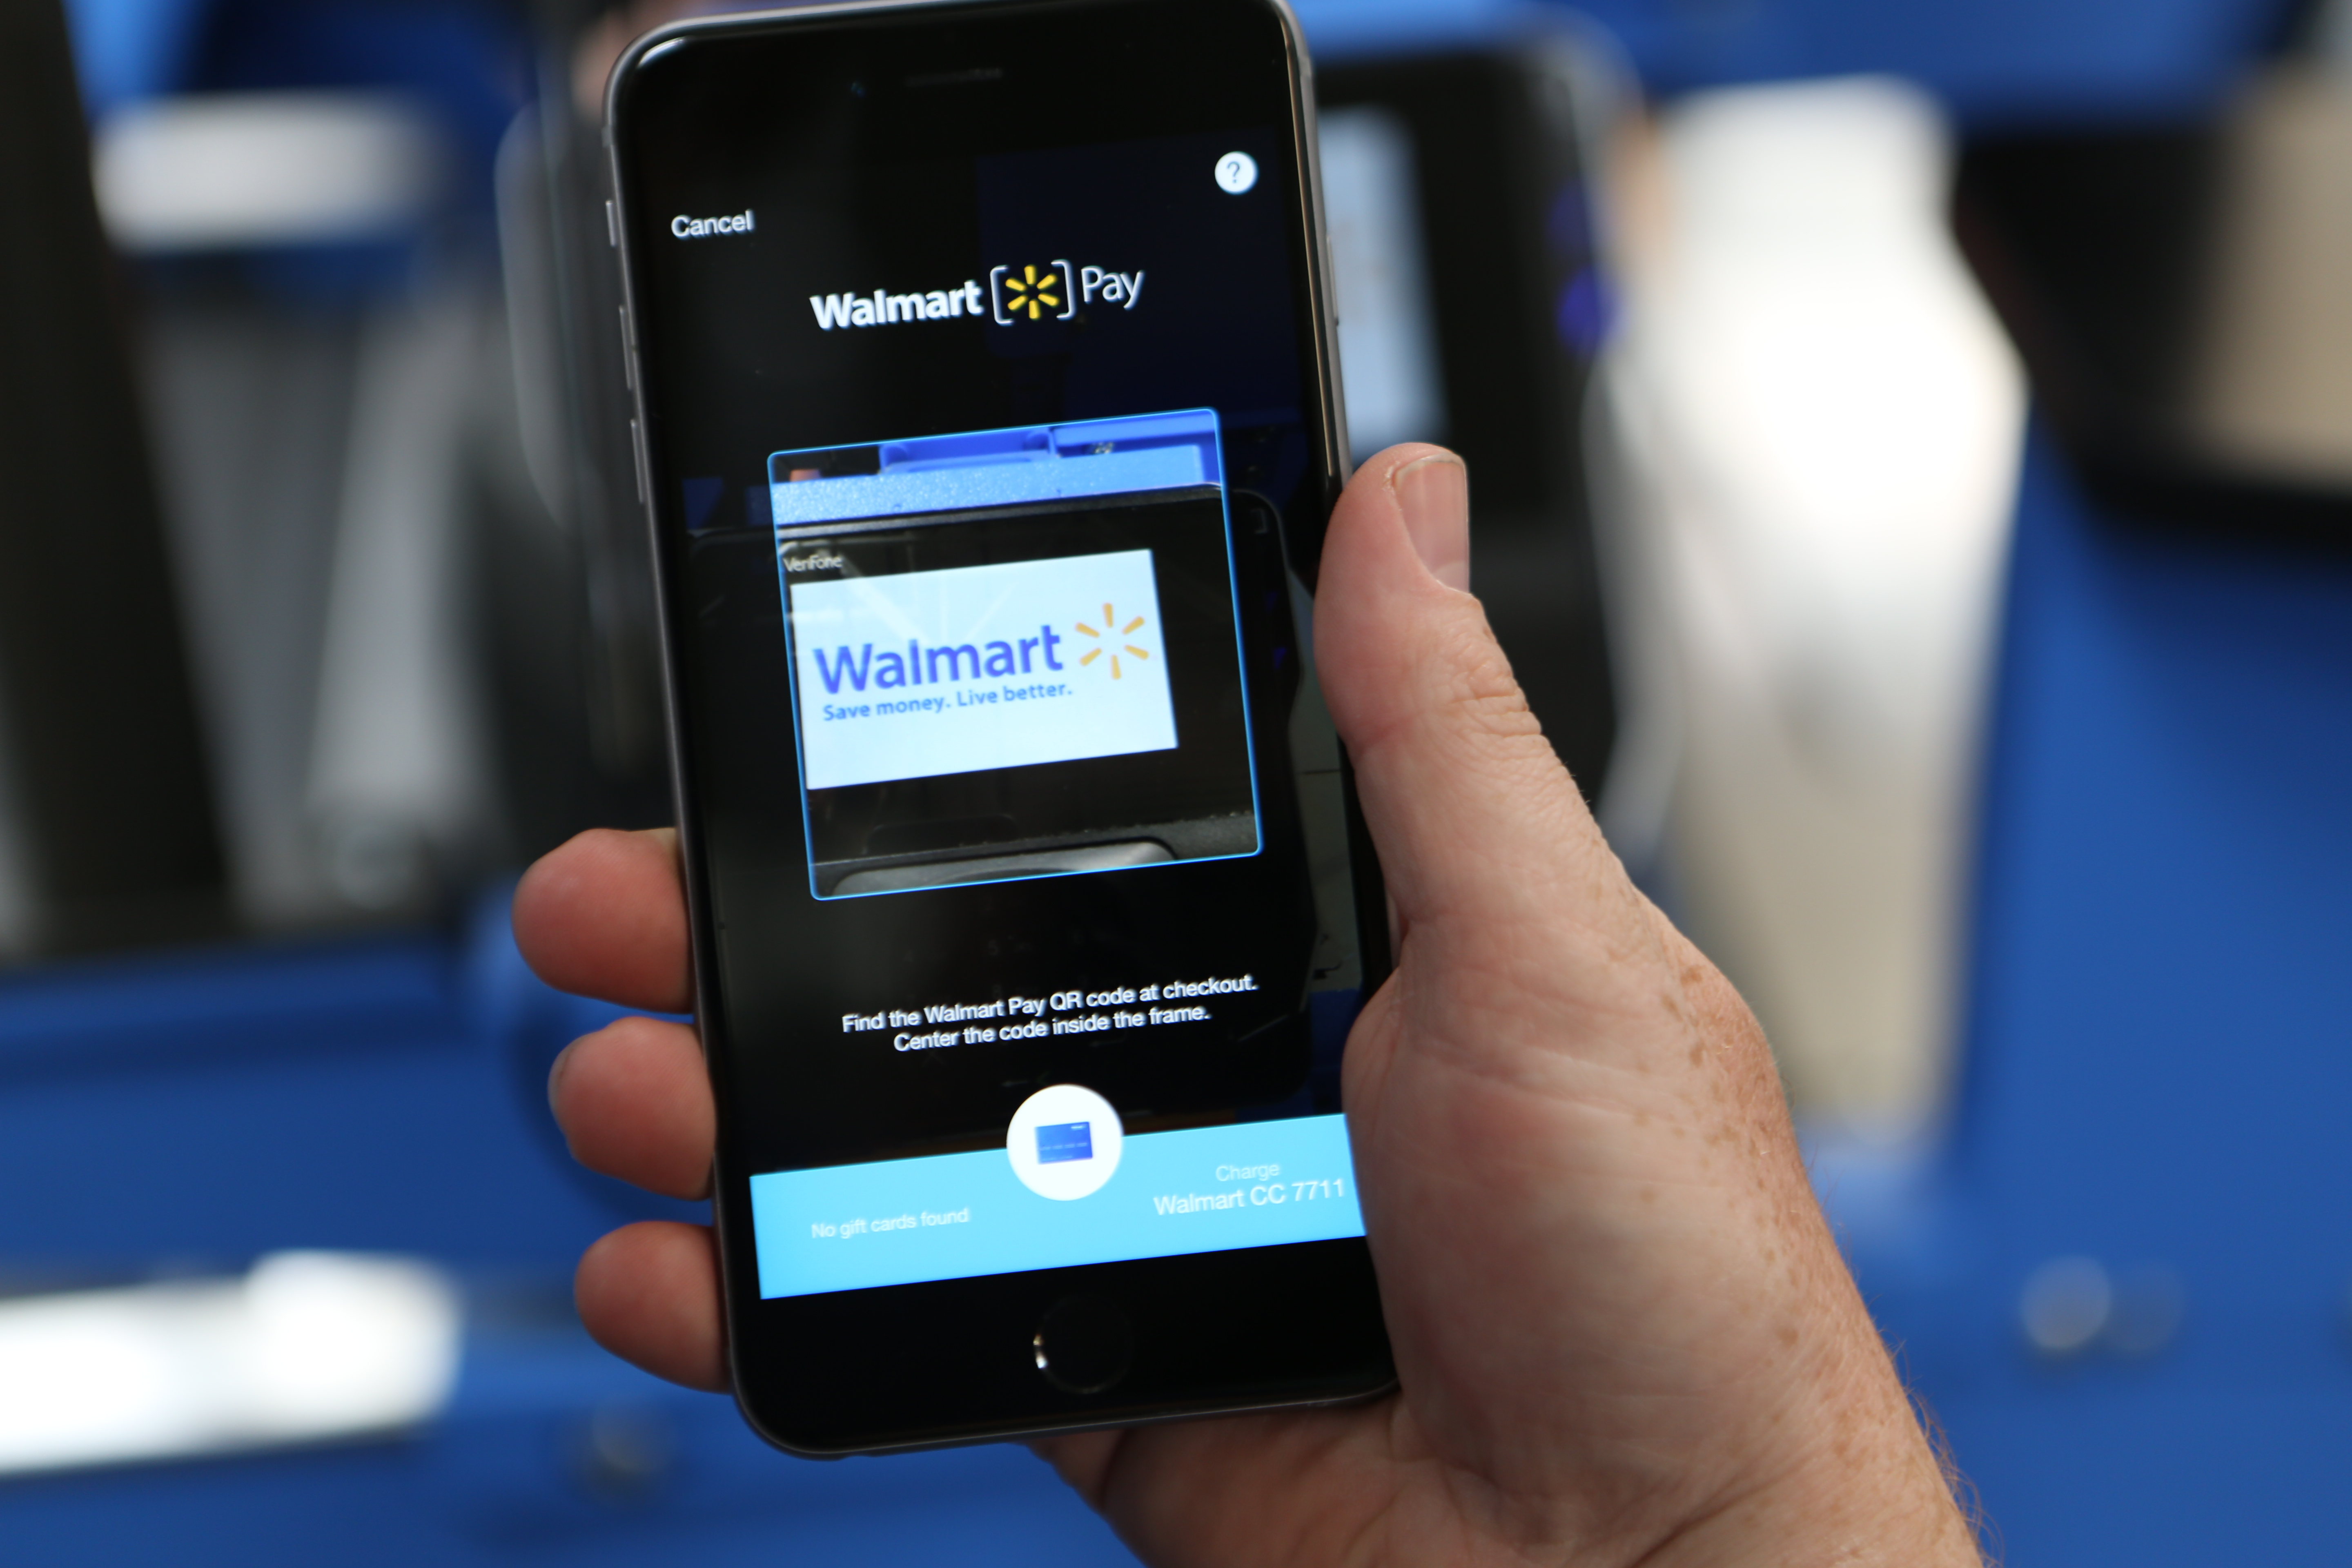 Walmart's app will now let Pharmacy and Money Services customers